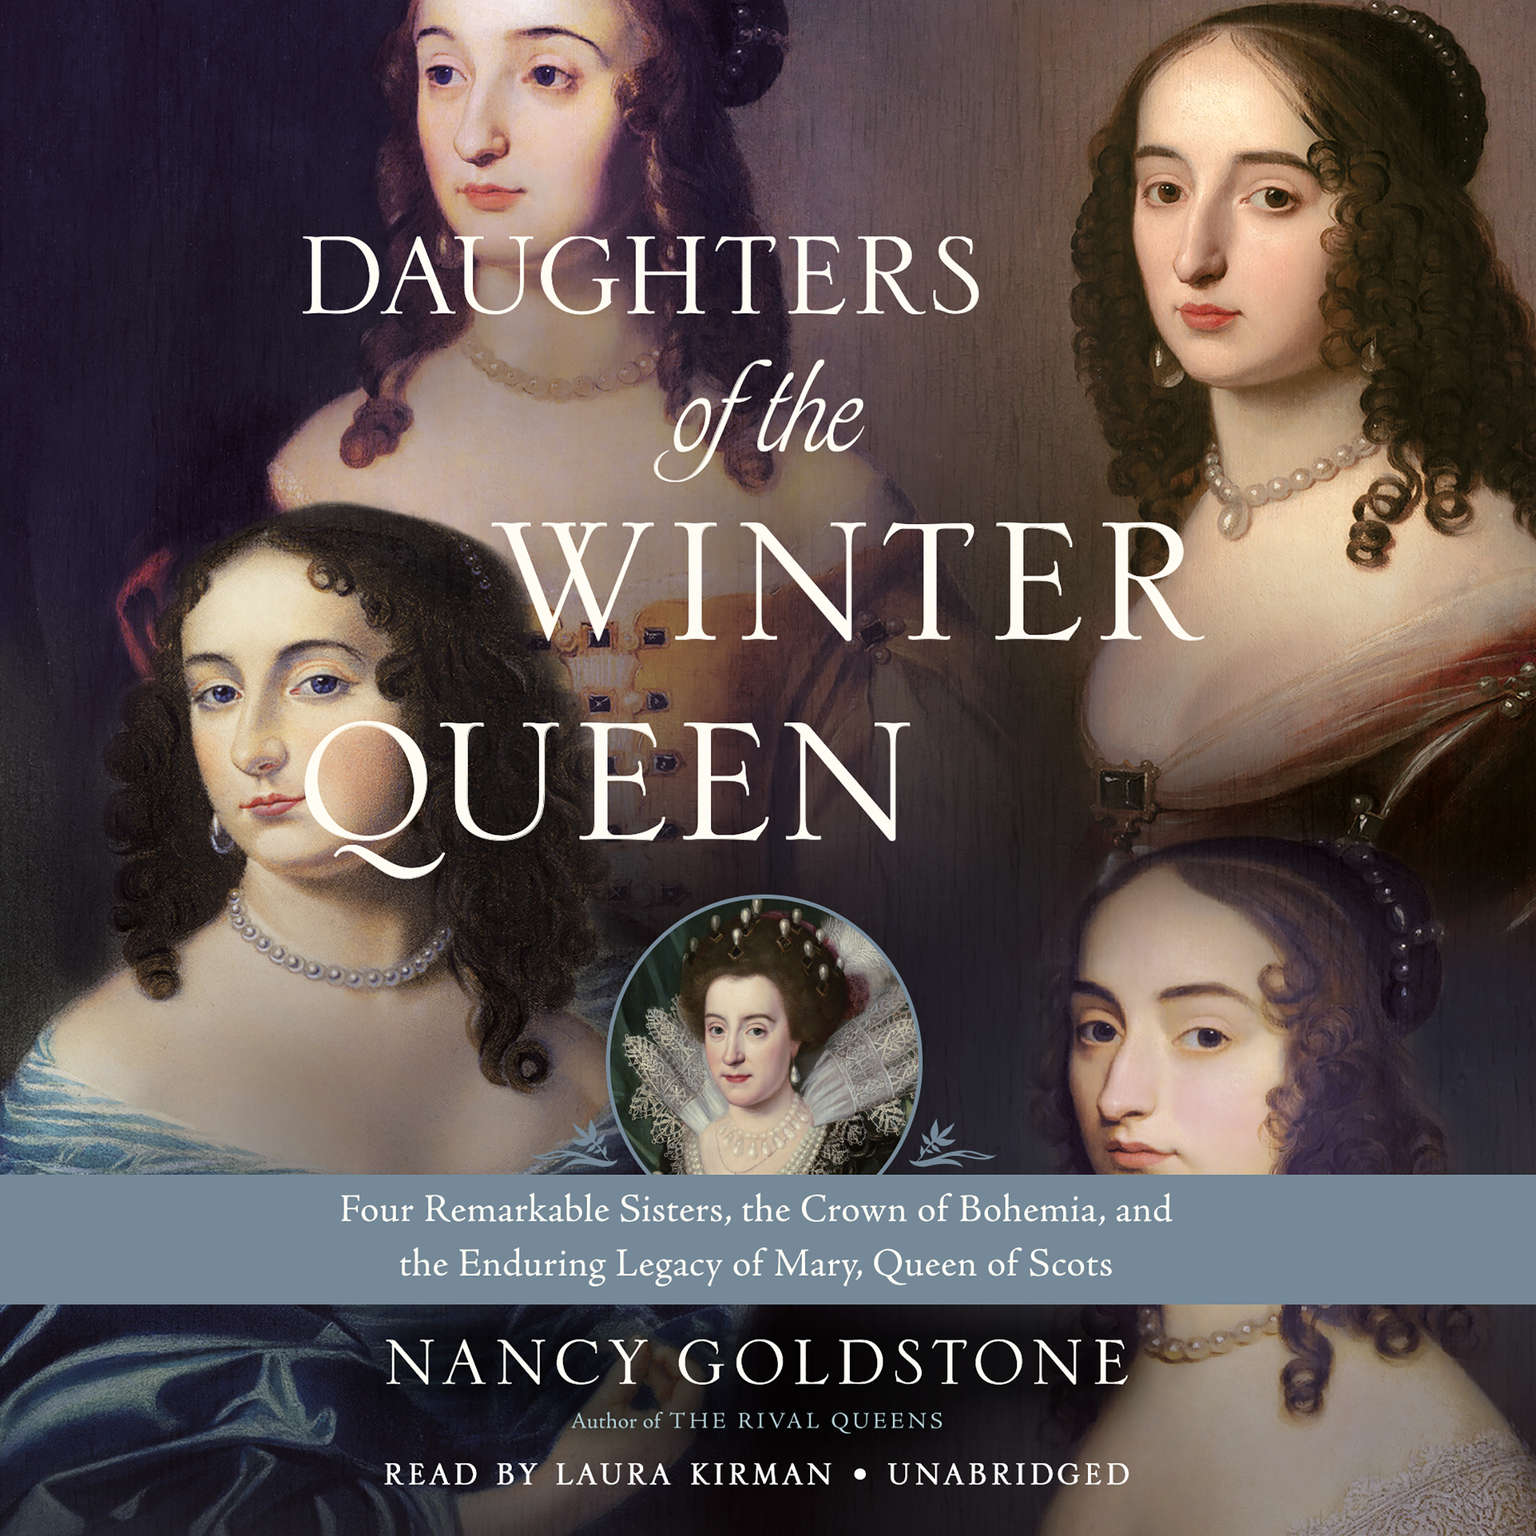 Daughters of the Winter Queen: Four Remarkable Sisters, the Crown of Bohemia, and the Enduring Legacy of Mary, Queen of Scots Audiobook, by Nancy Goldstone